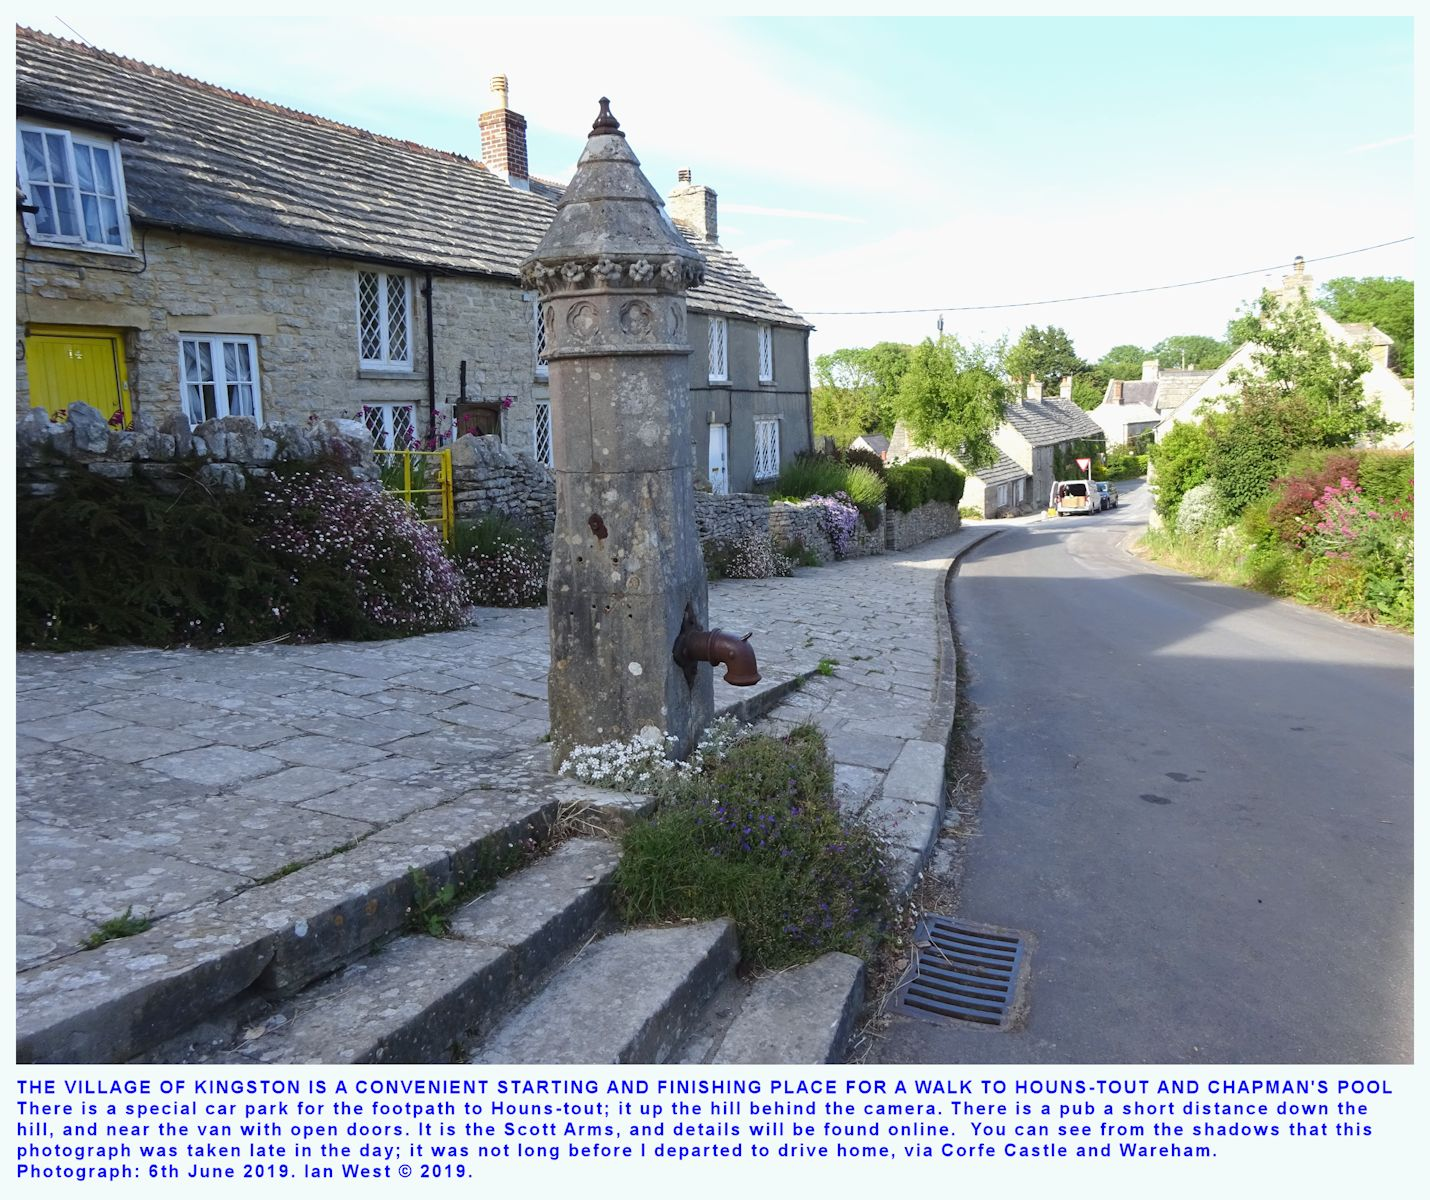 Back, from Houns-tout to the village of Kingston